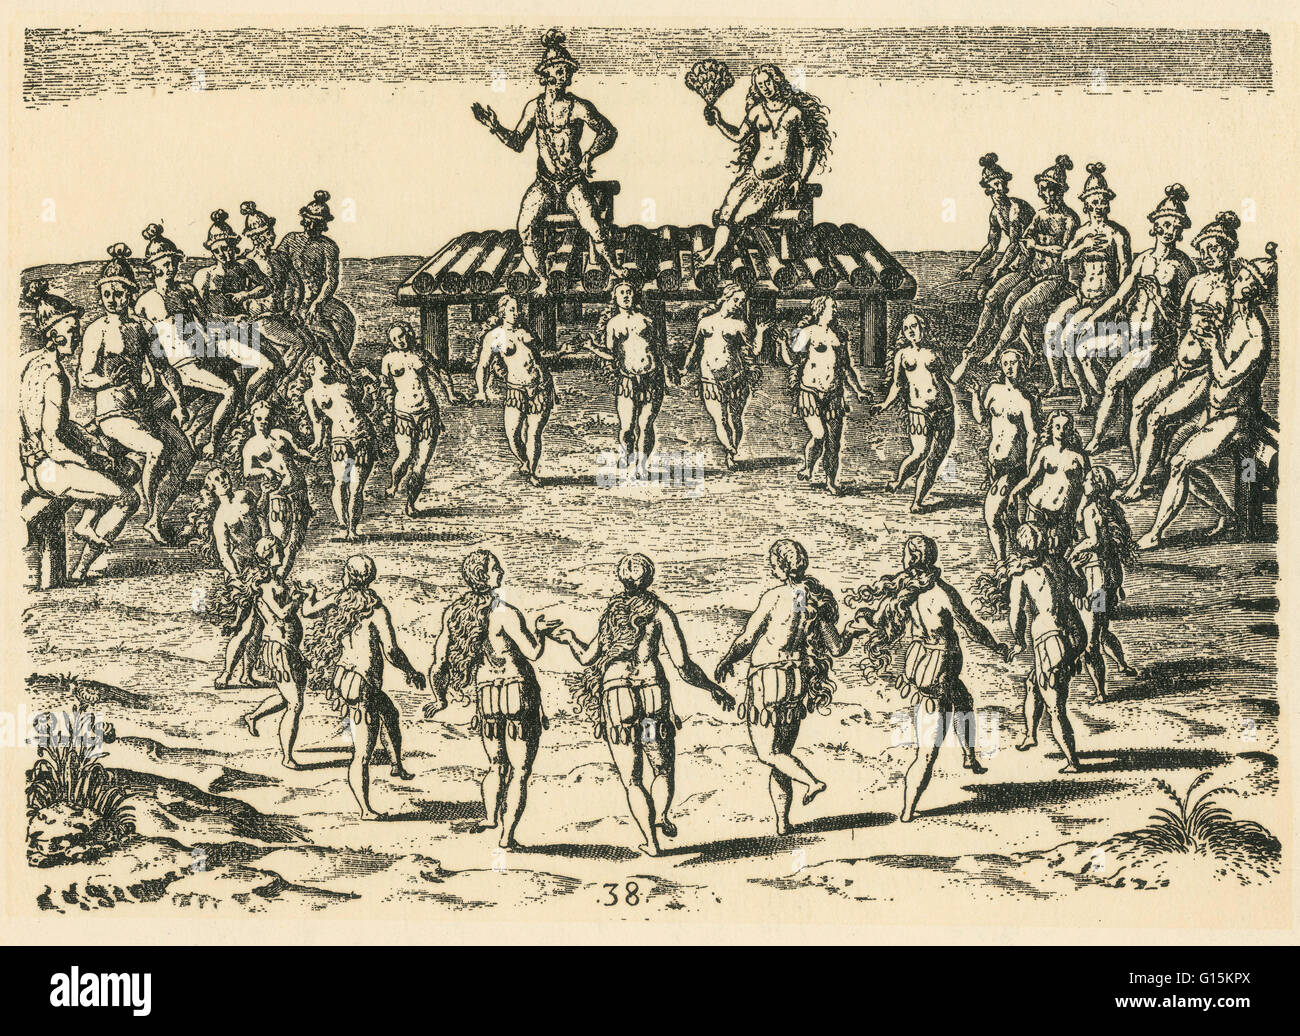 Late 16th-century engraving by Theodor de Bry, after a watercolor by Jacques le Moyne, titled 'The King Receives - Stock Image